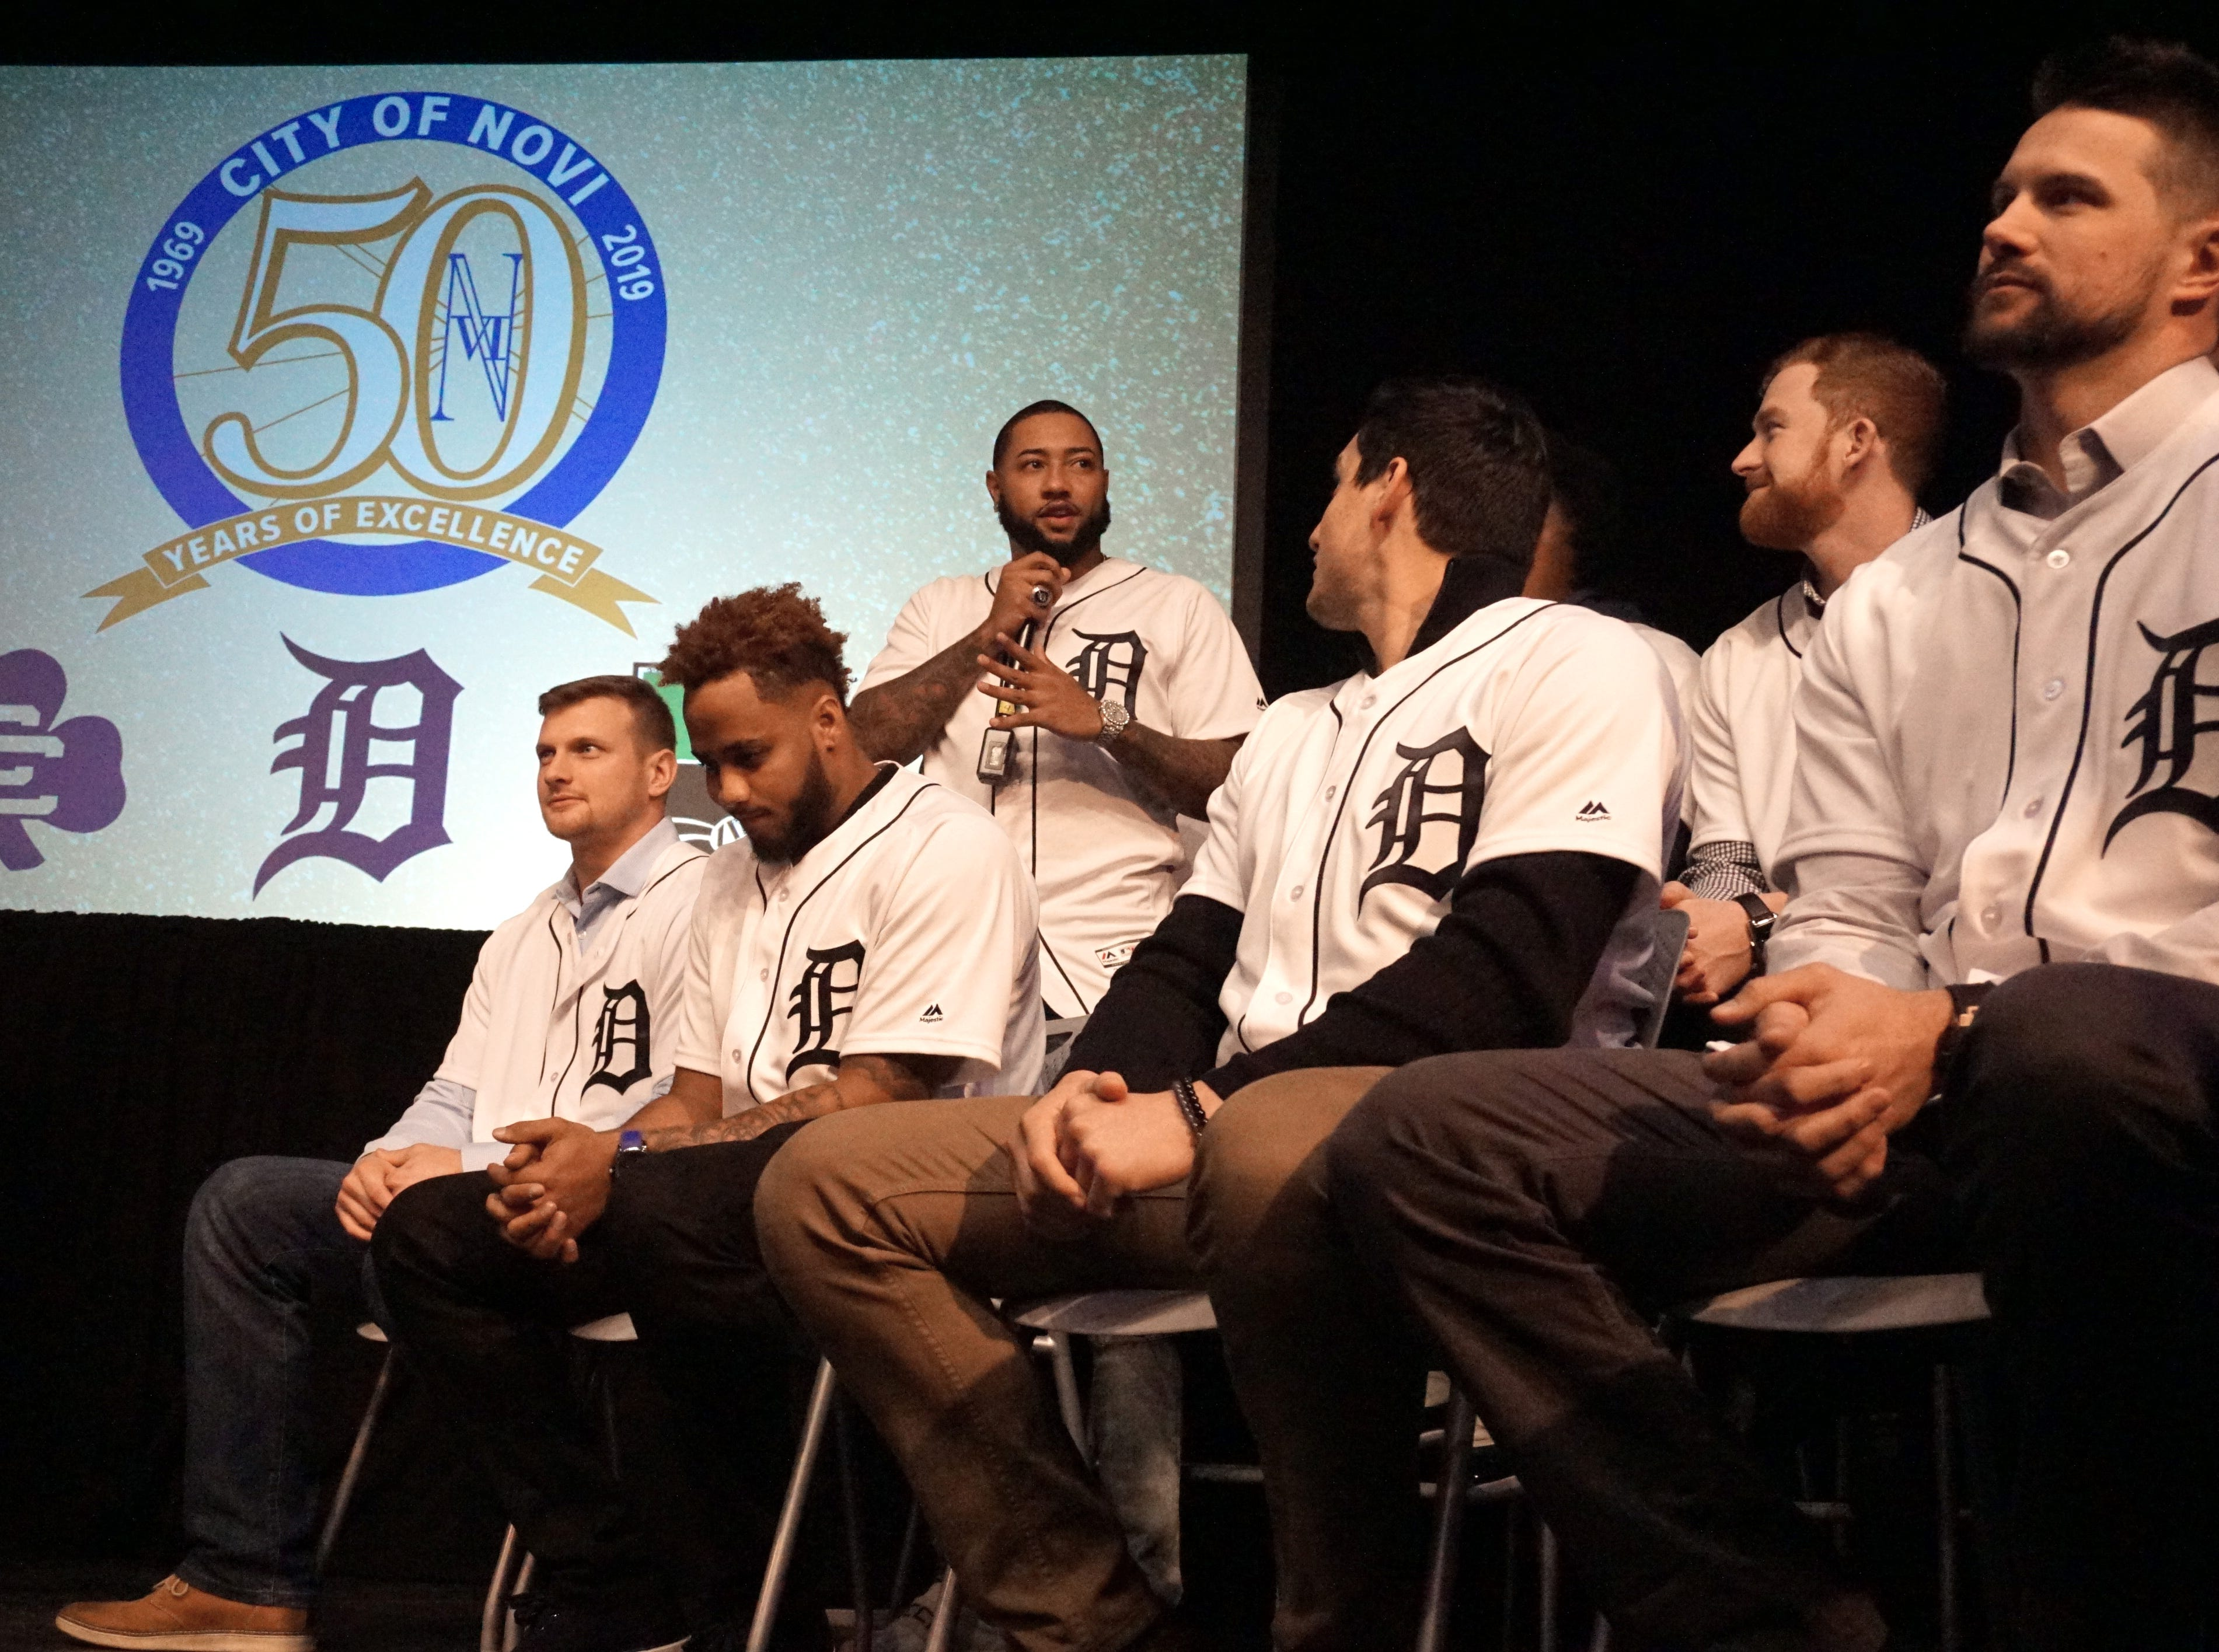 Members of the Detroit Tigers took questions from fans gathered at the Novi Civic Center on Thursday.